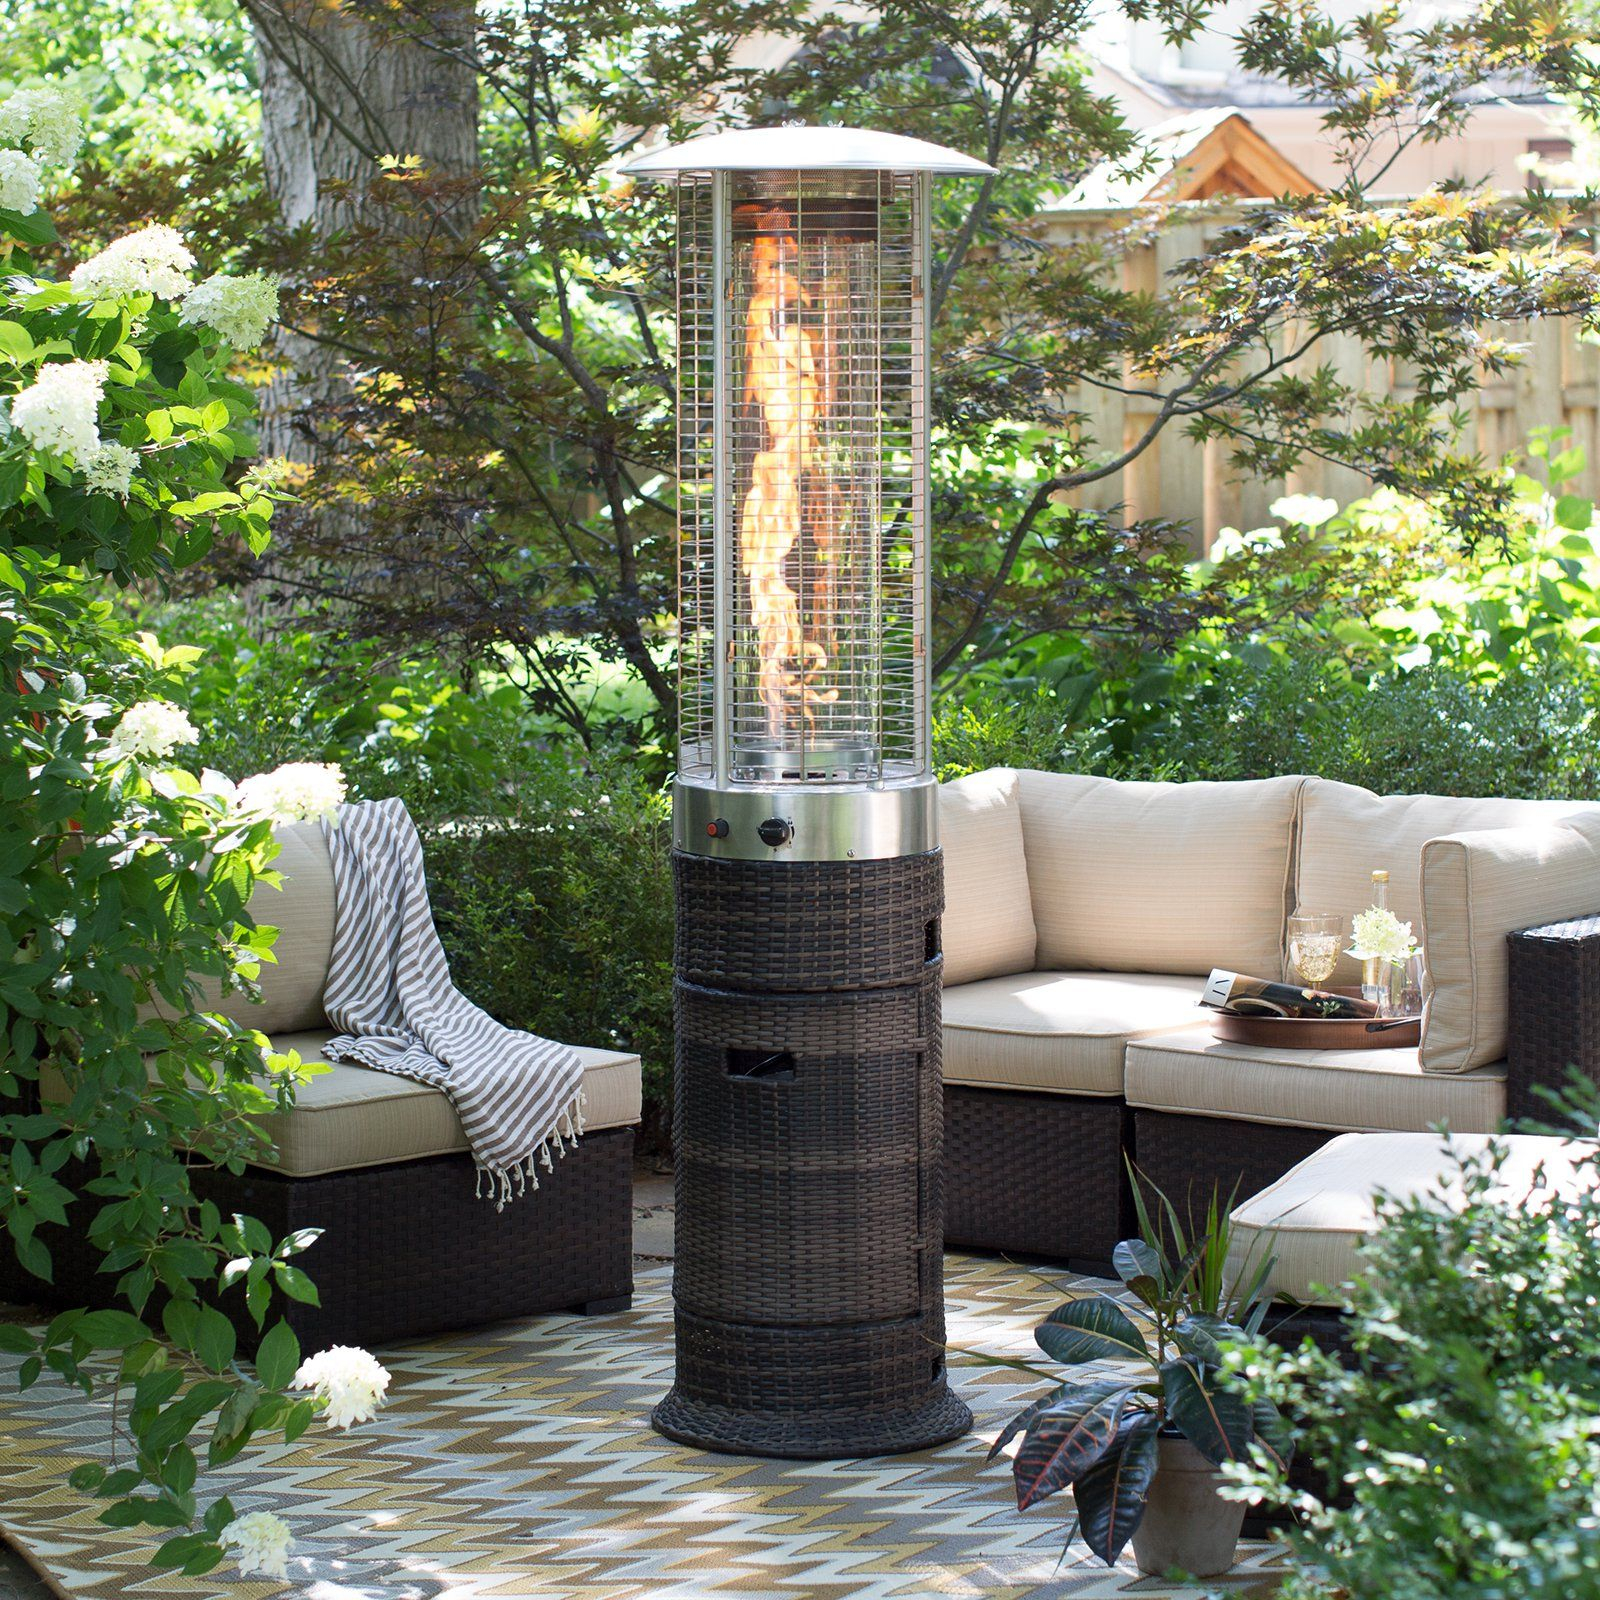 Red Ember Wicker Patio Heater 68798 Products In 2019 Outdoor intended for size 1600 X 1600